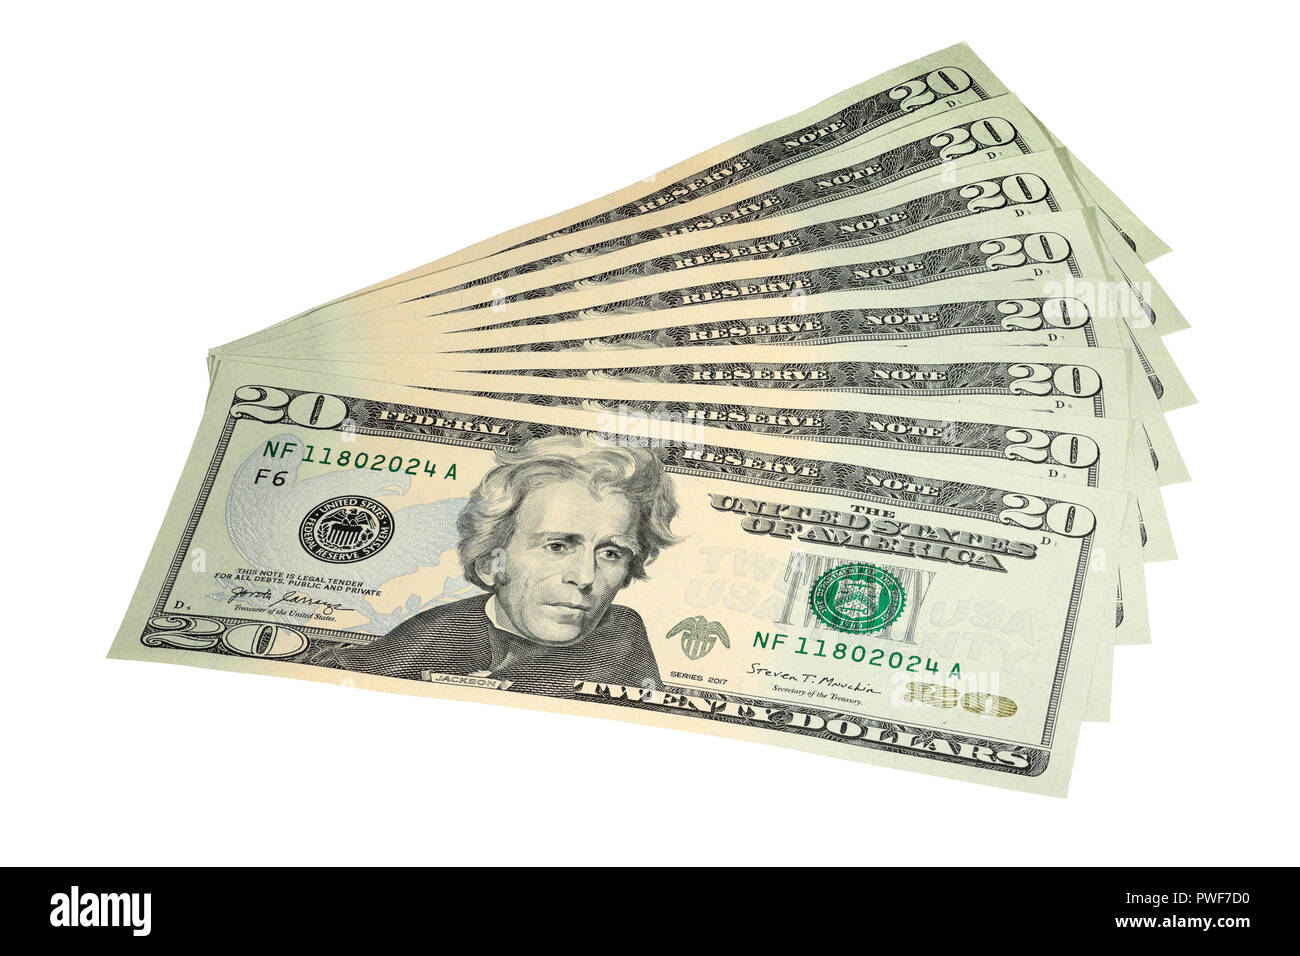 A Fan of $20 Bills isolated on a white background - Stock Image